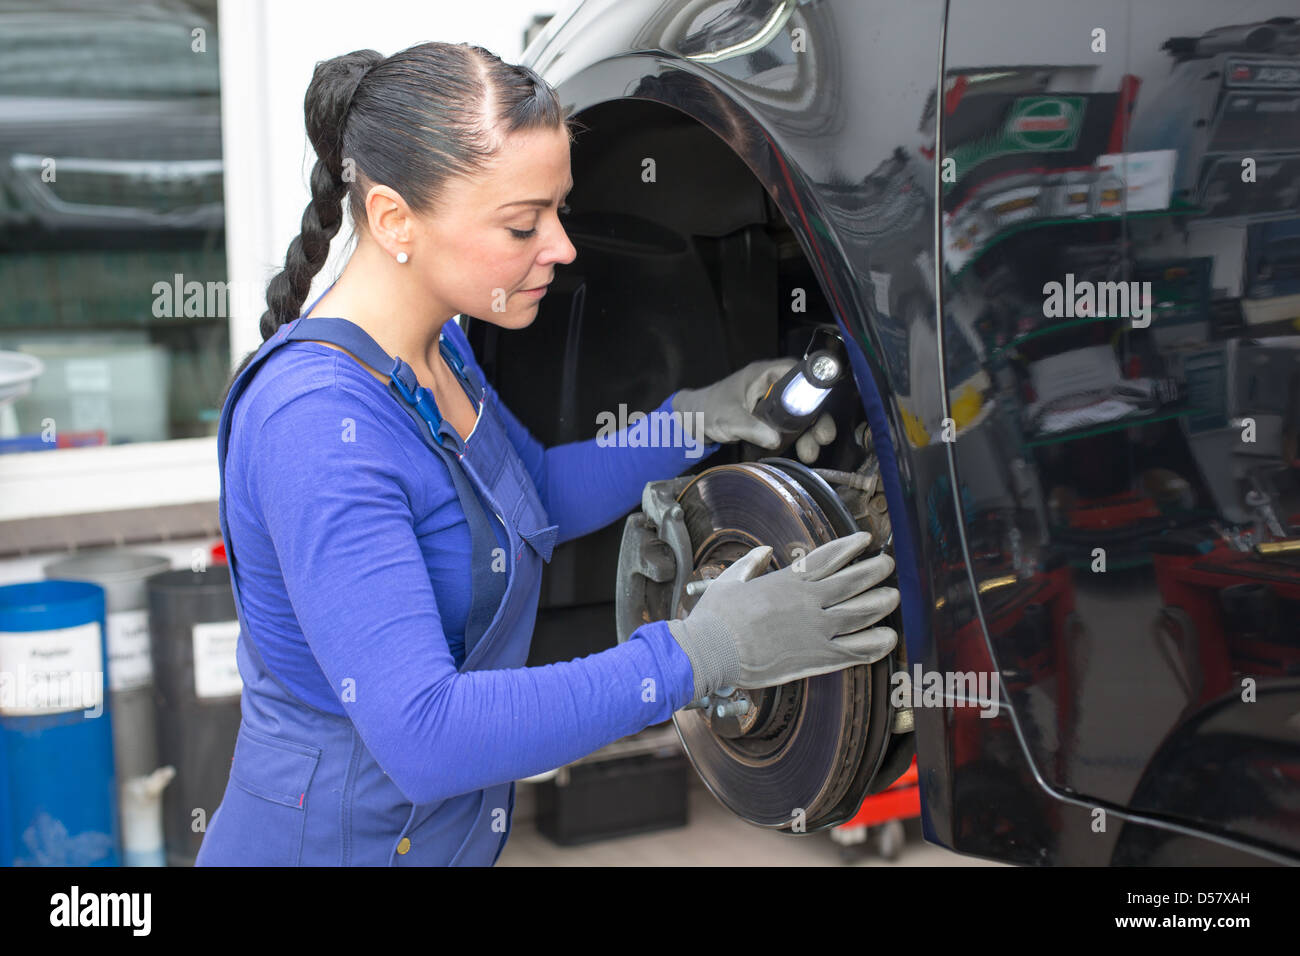 Car mechanic repairs the brakes of an automobile on a hydraulic lift - Stock Image